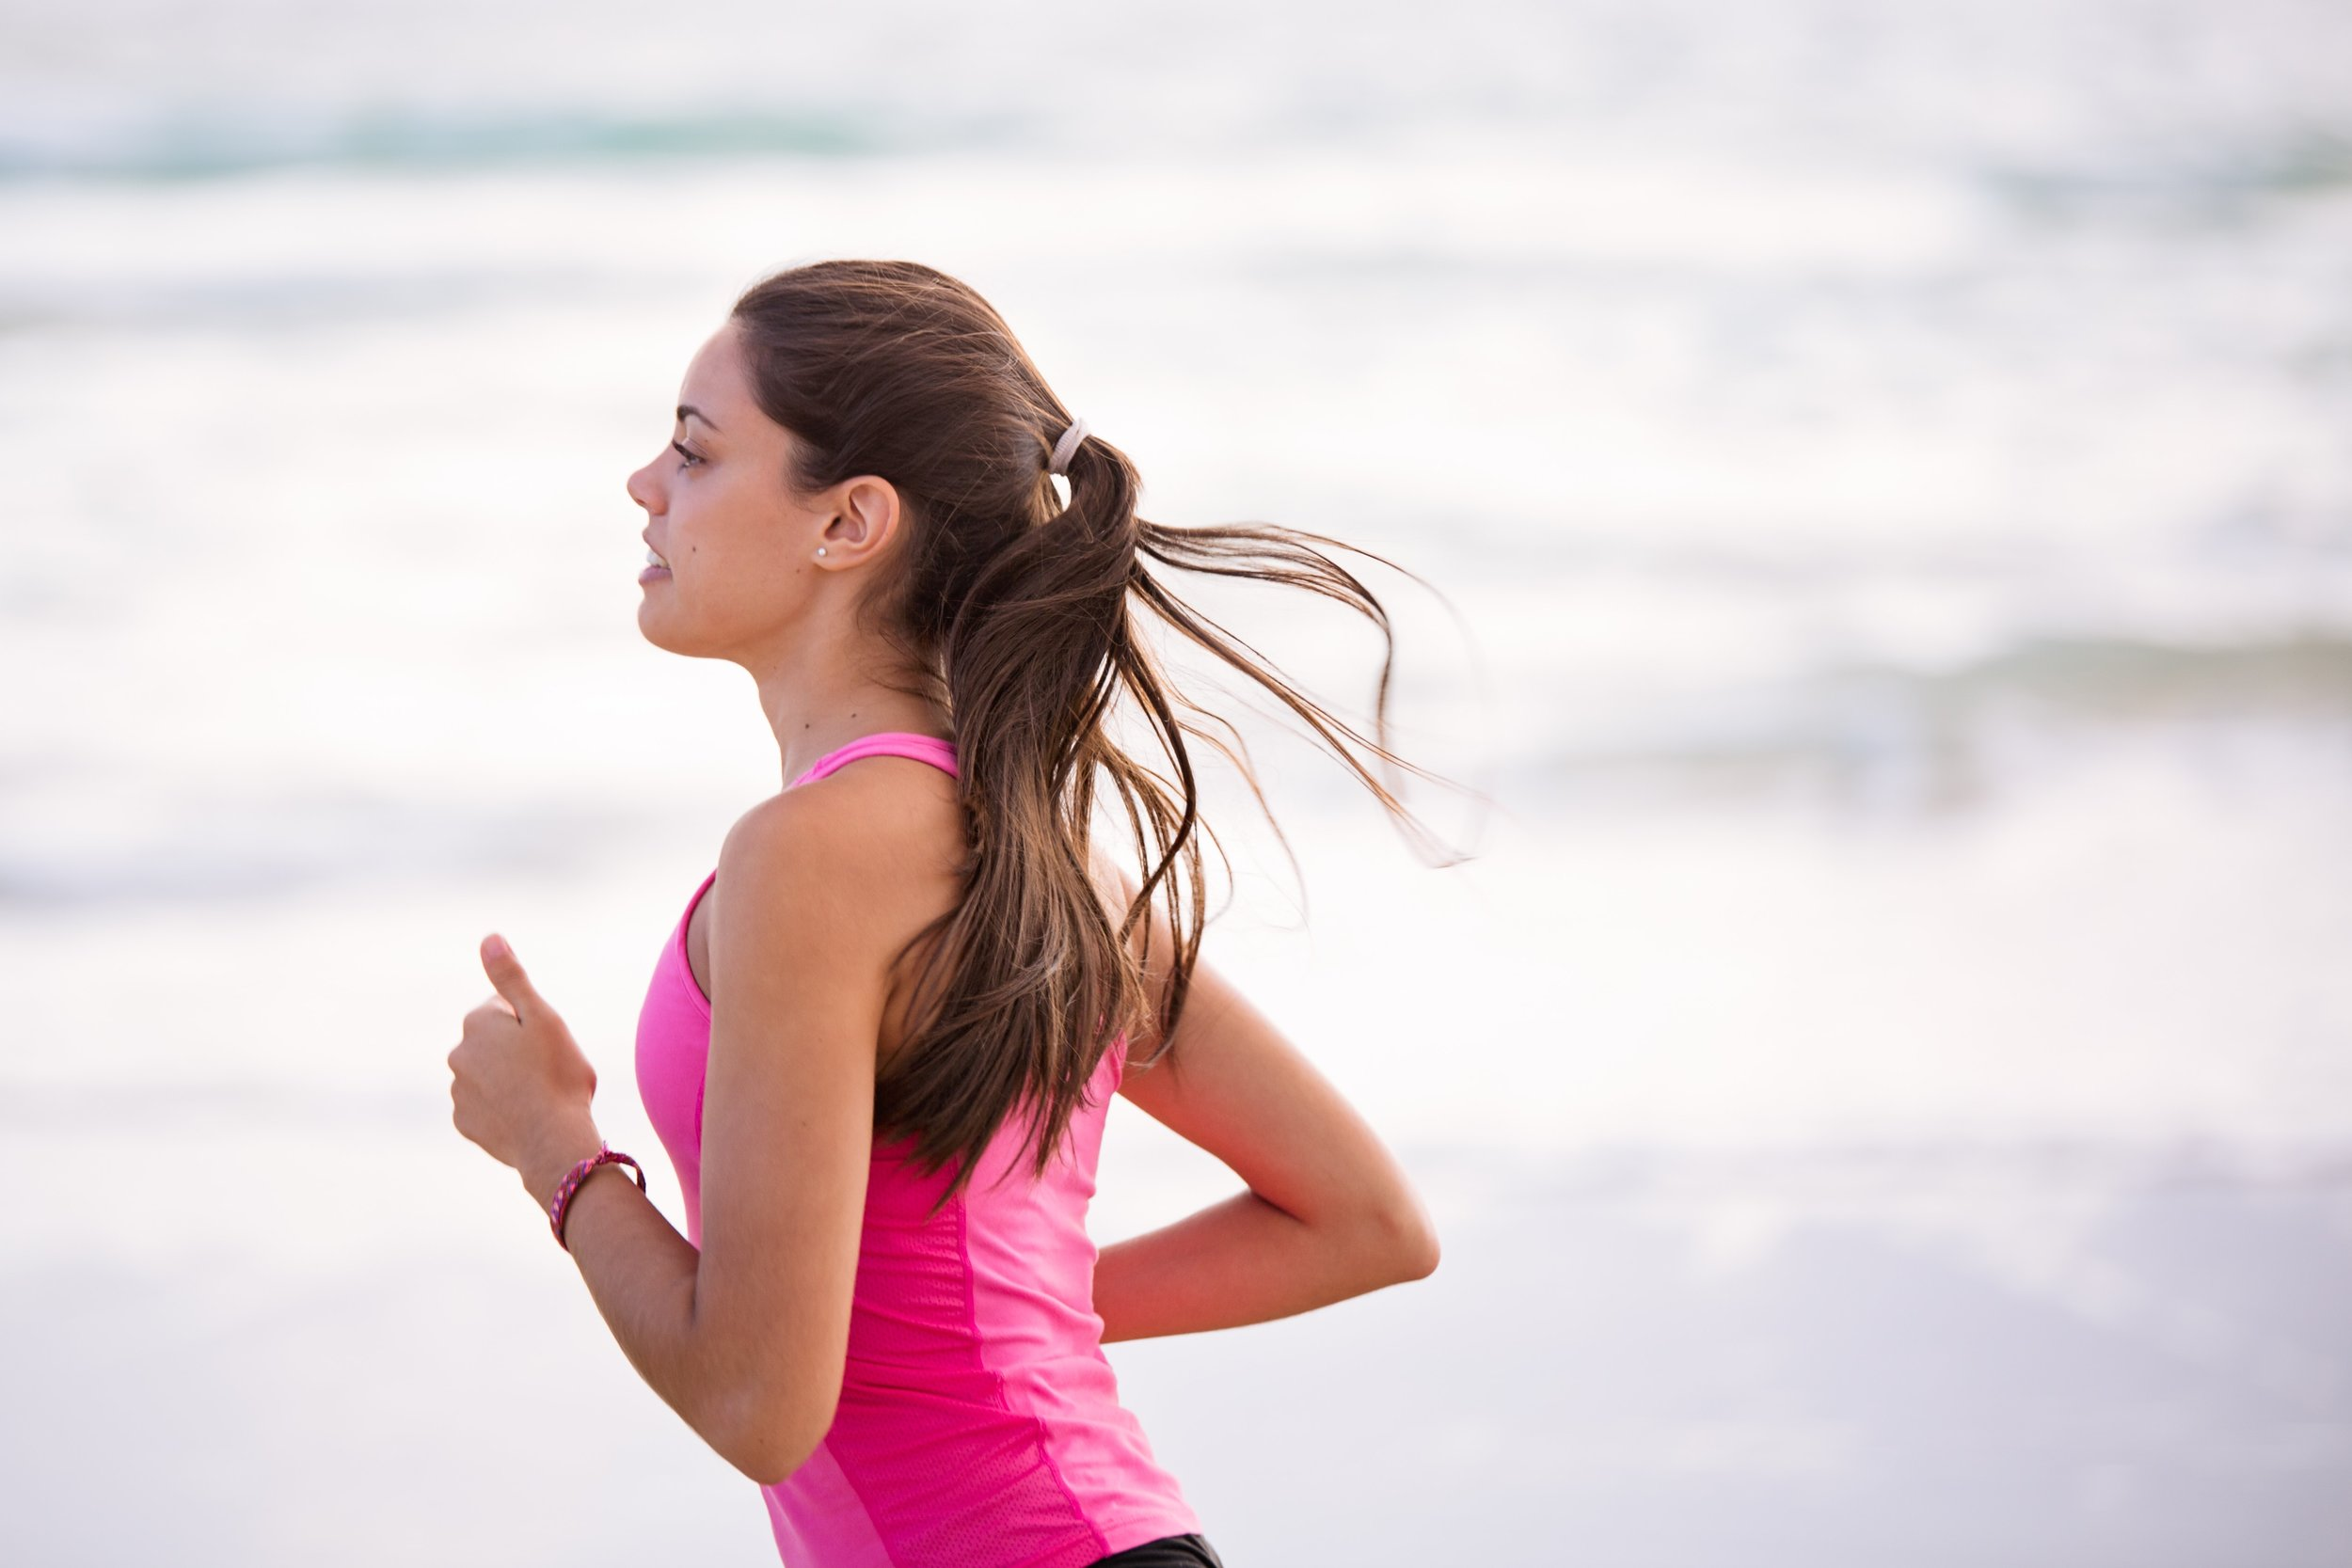 fitness jog white women with long black hair running next to beach wearing pink top